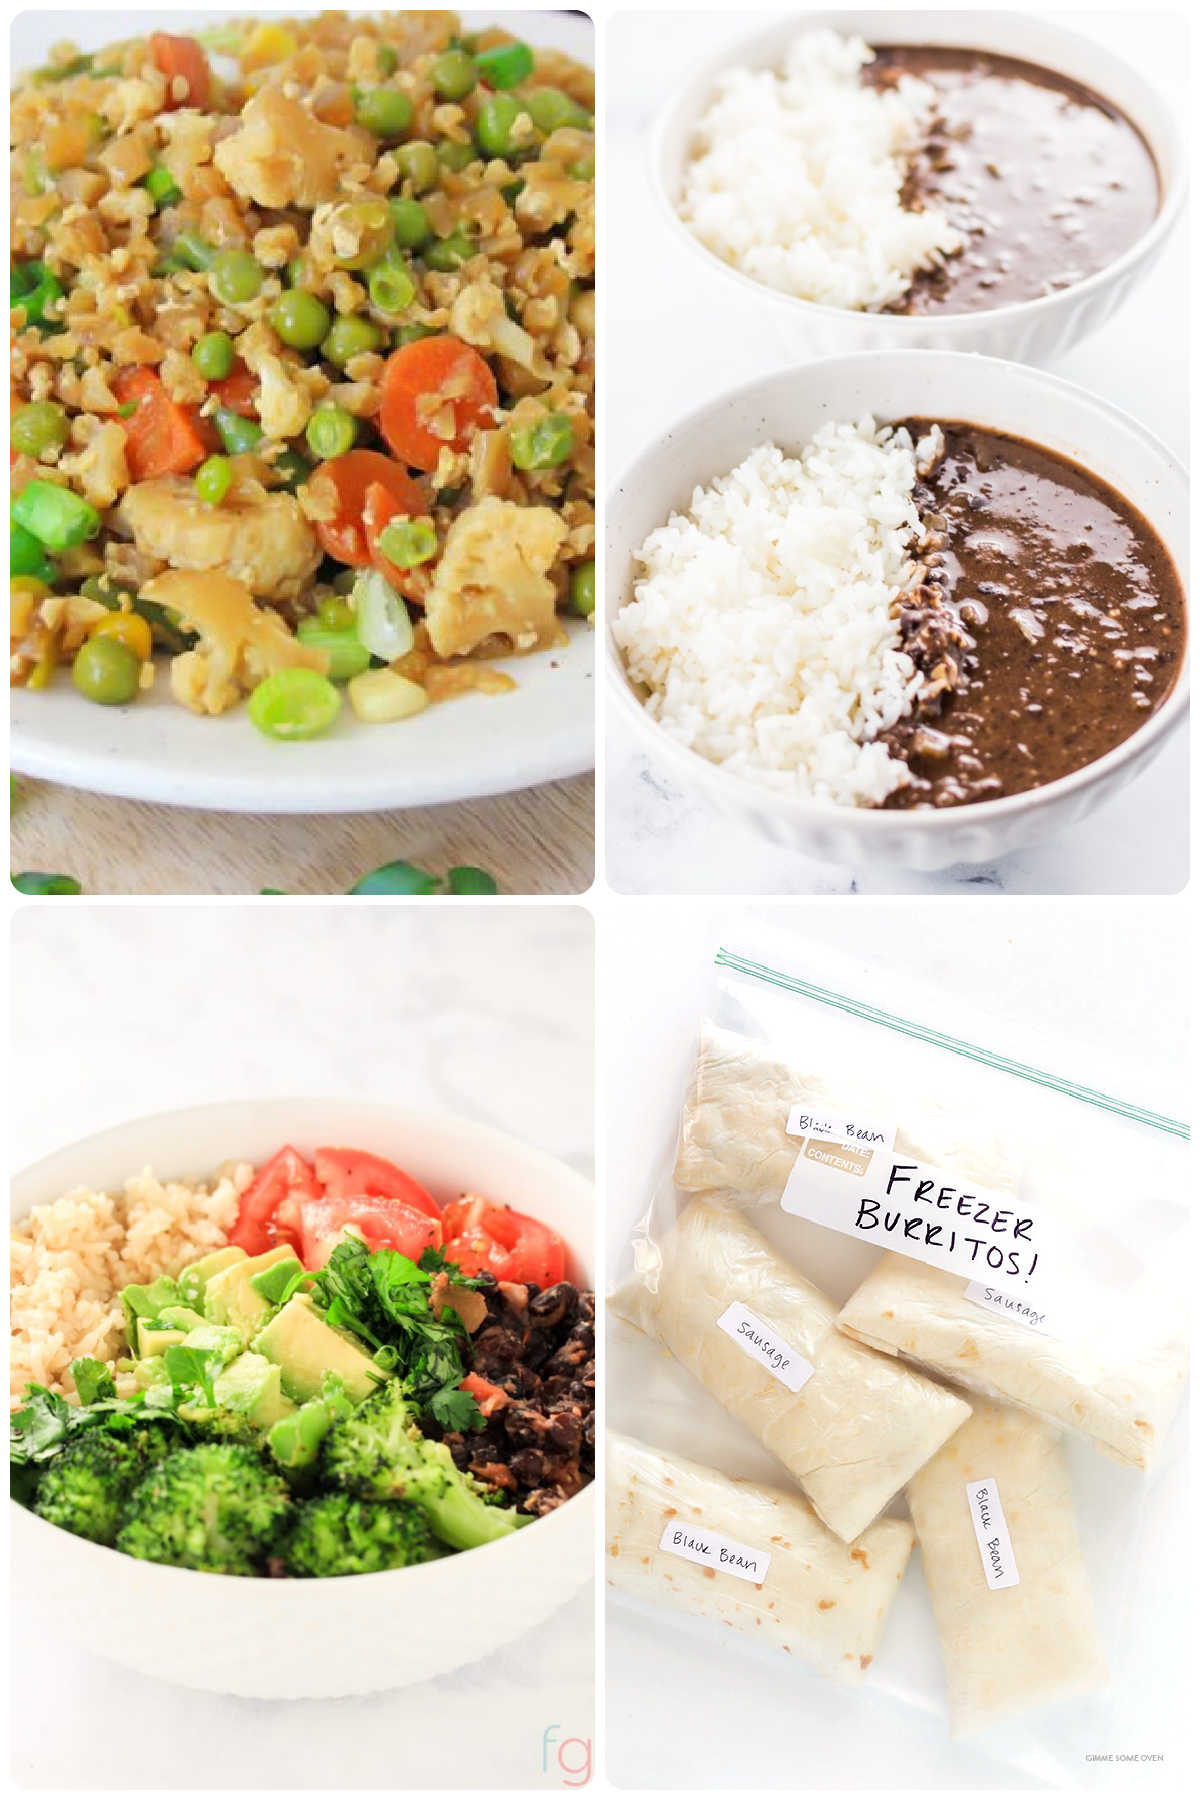 four images showing different types of vegetarian meals that can be meal-prepped.